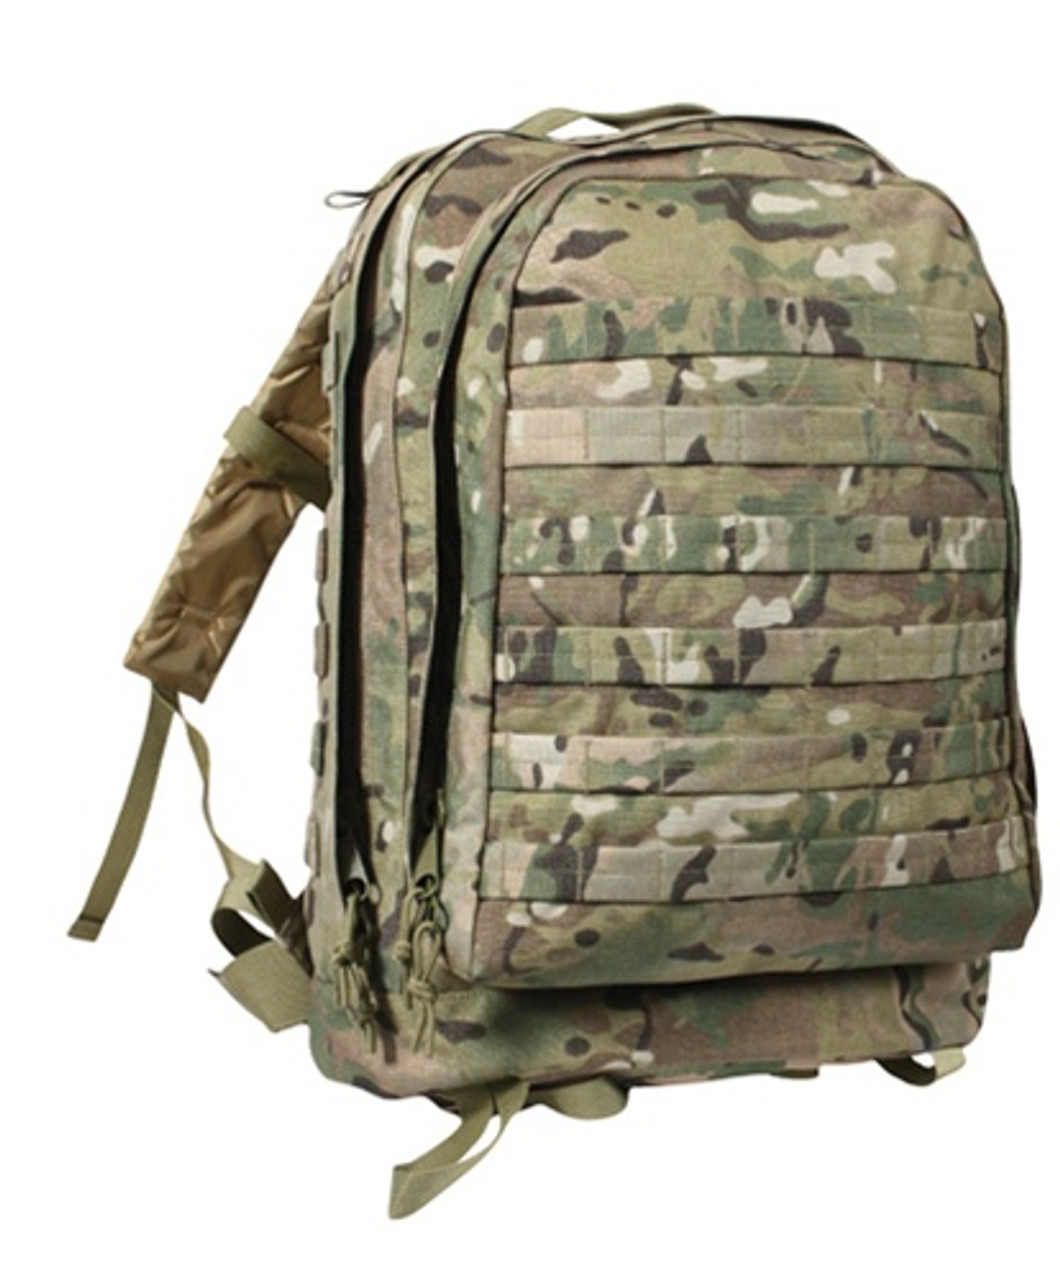 MULTICAM MOLLE II 3-DAY ASSAULT PACK from Hessen Antique